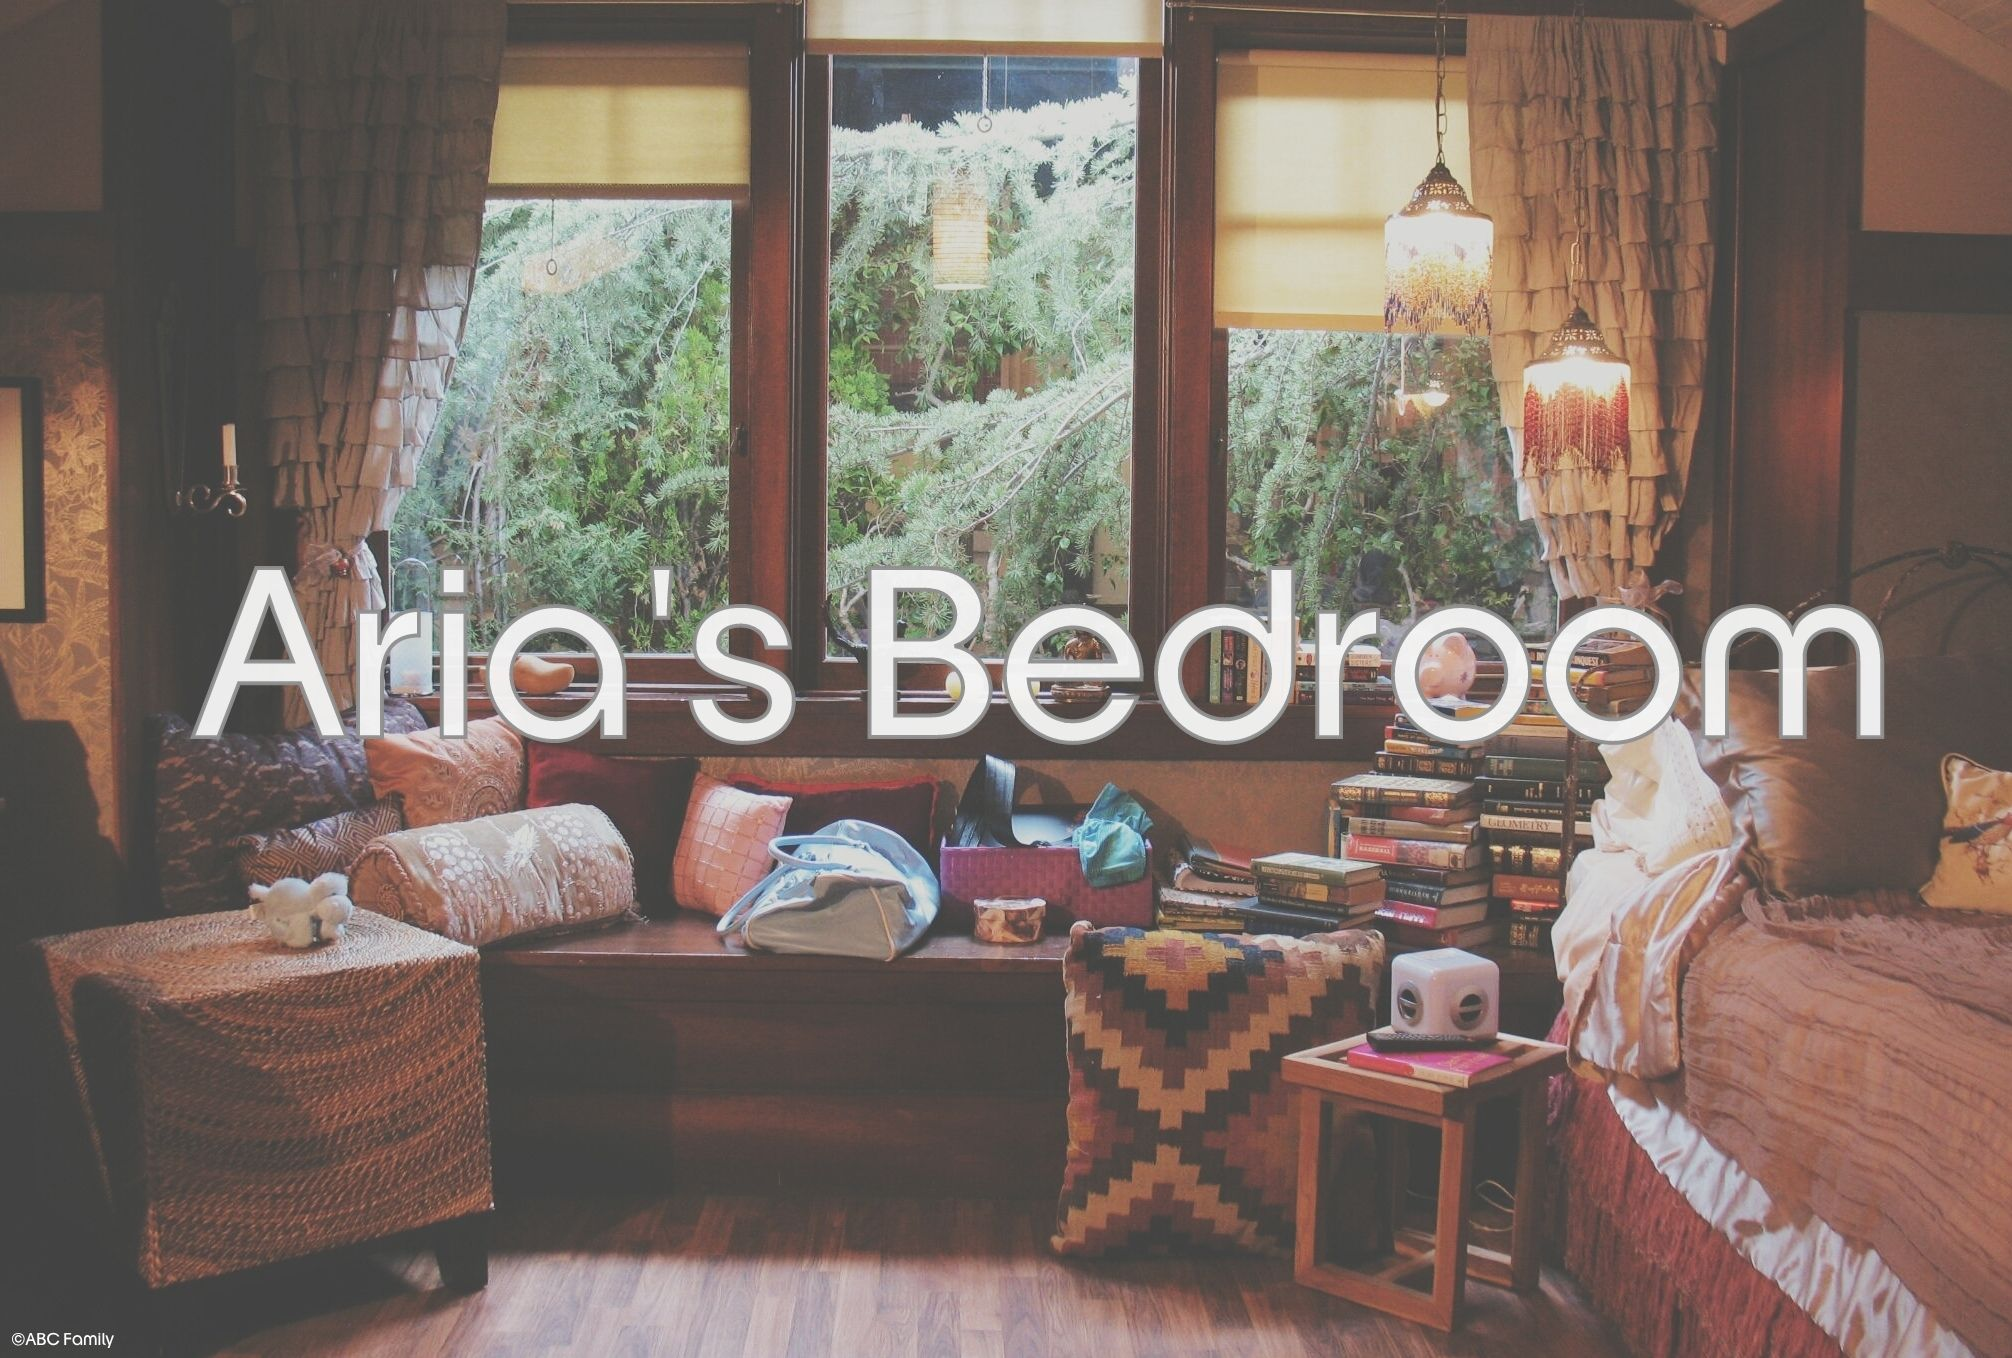 We Love All The Furniture And Decor In Aria's Bedroom